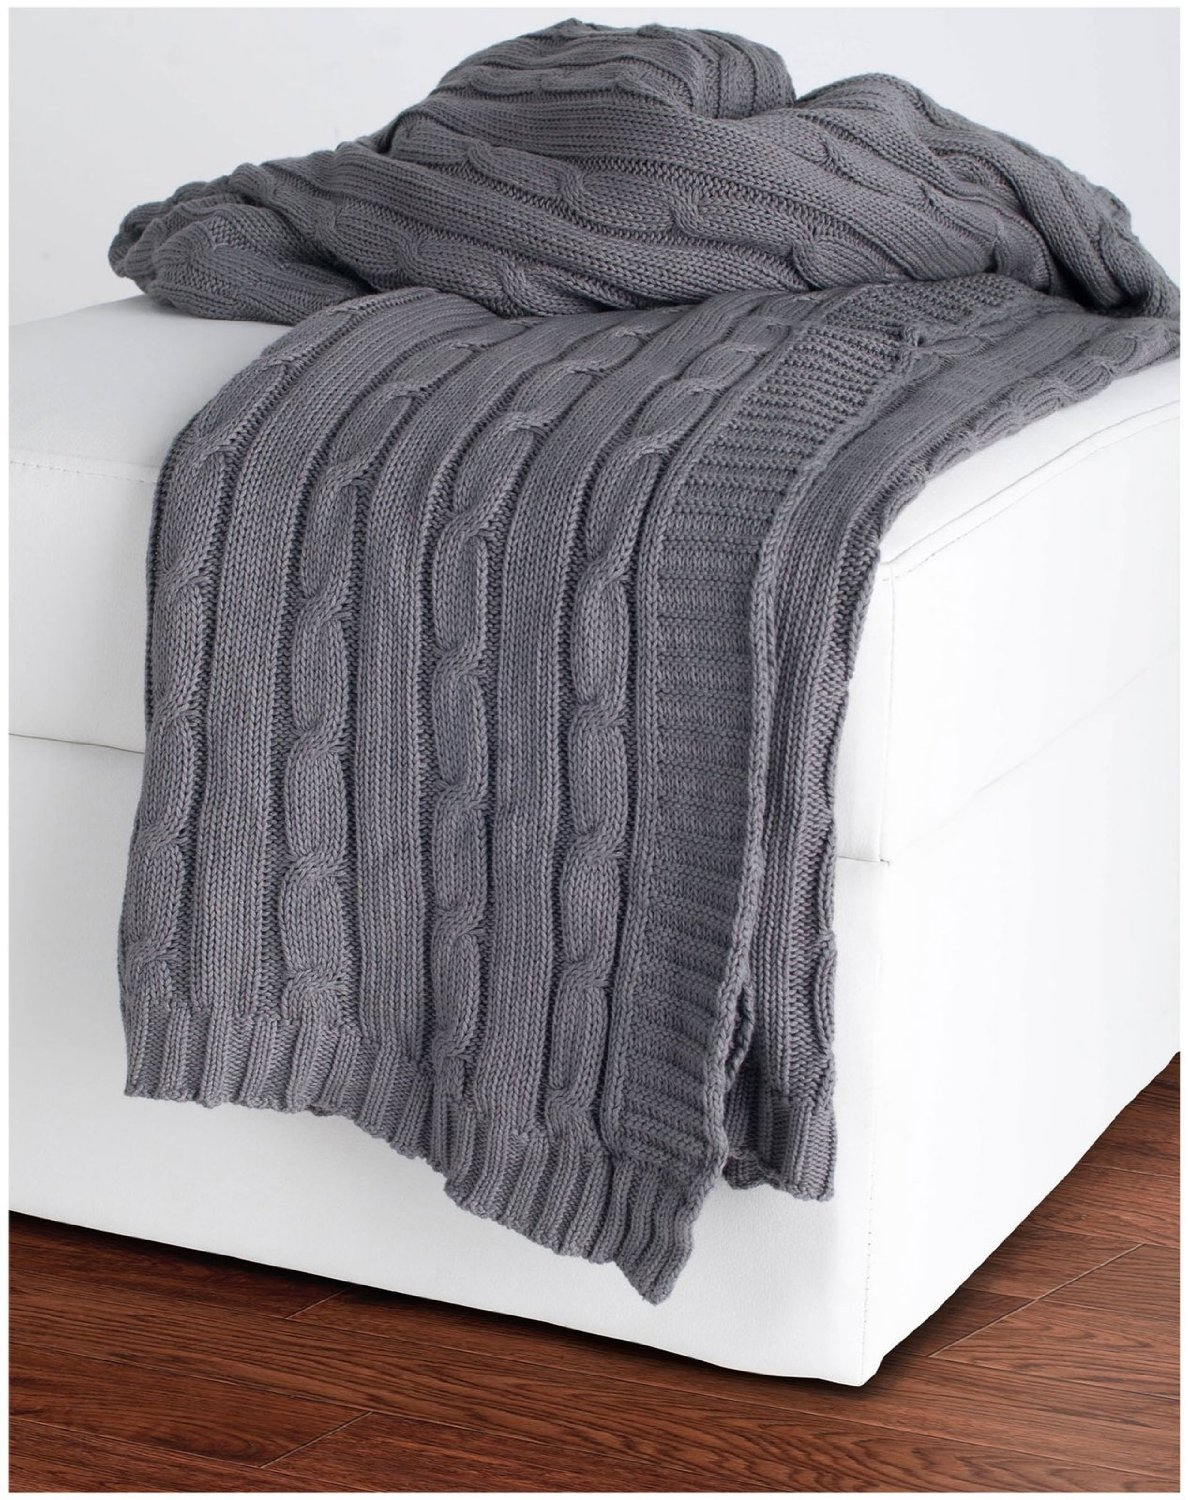 com - Rizzy Home Cable Knit Sweater Fabric Throw, Light Gray/Lt ...